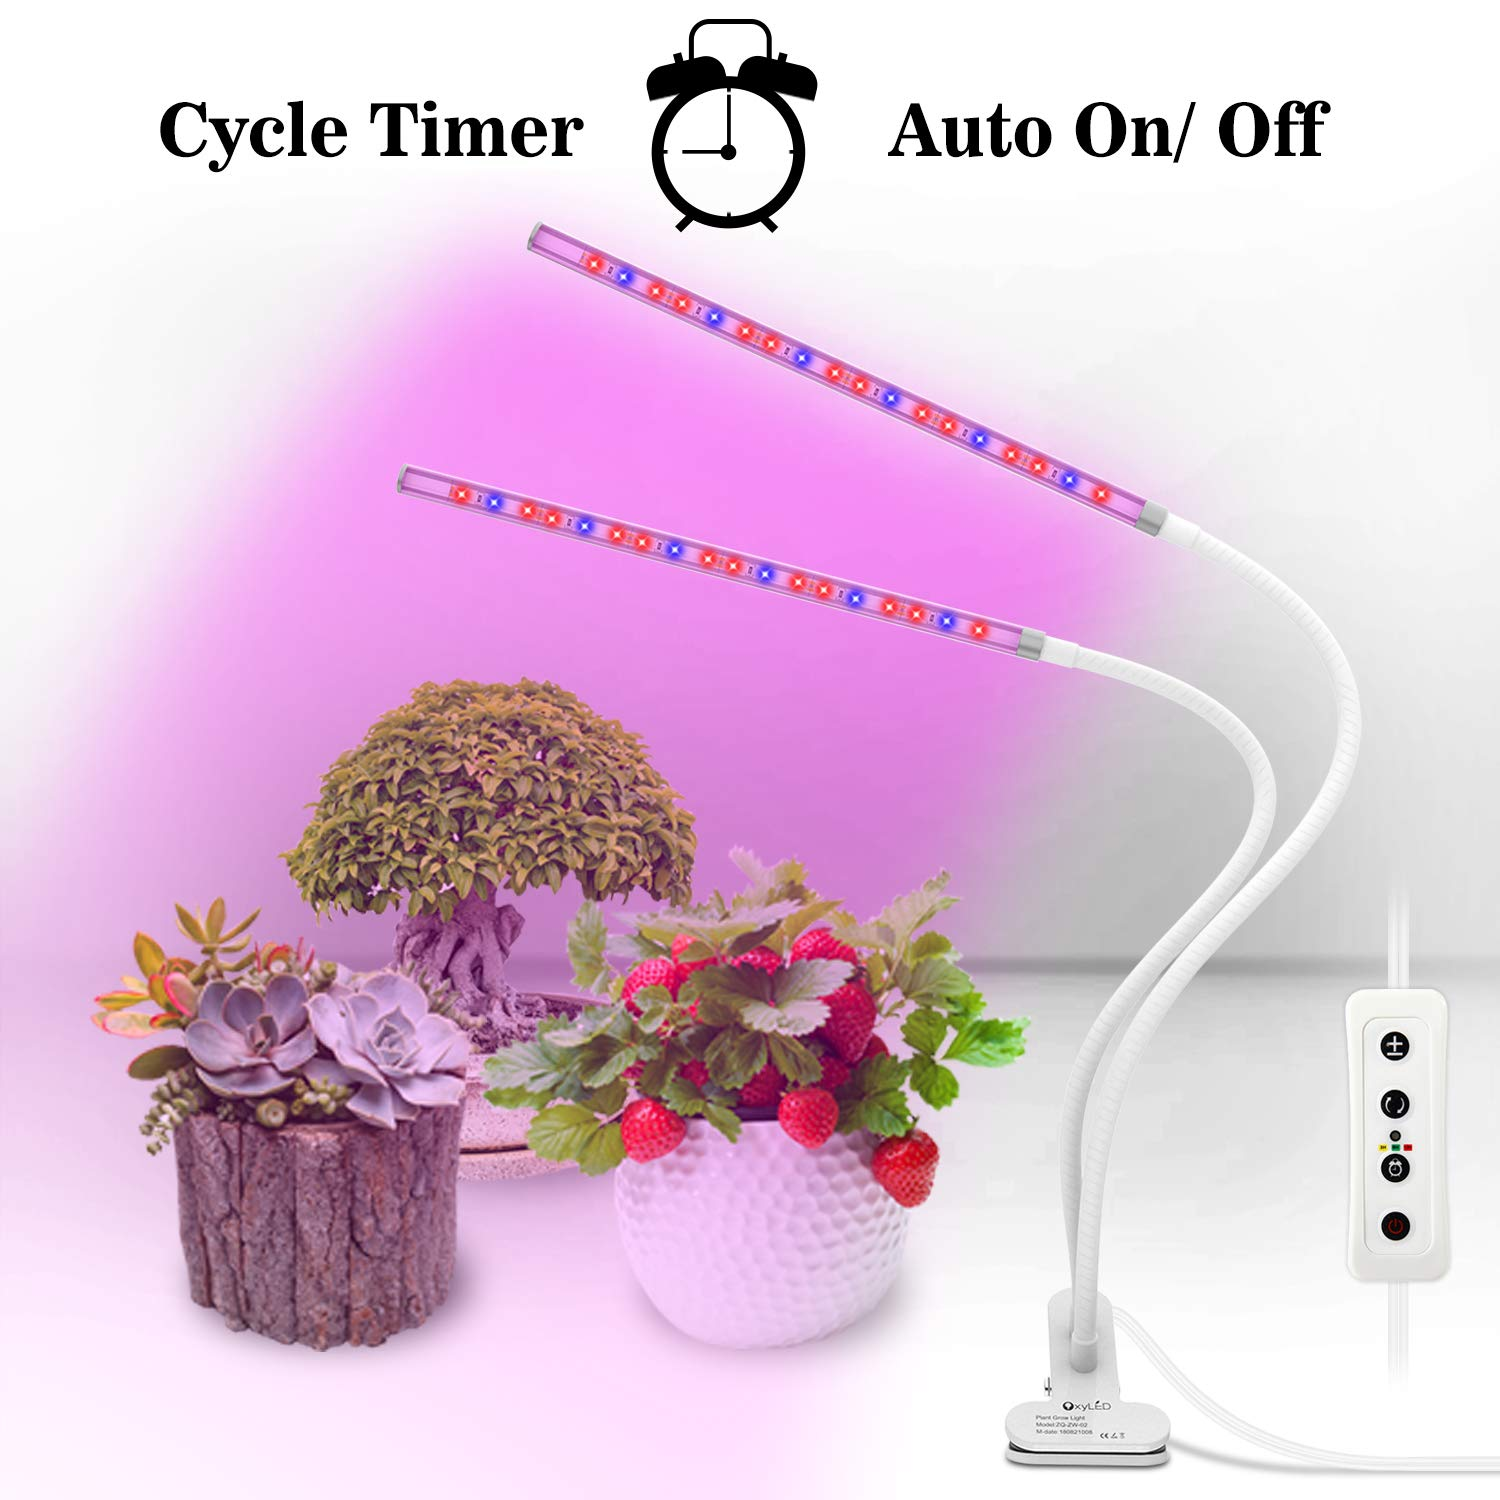 OxyLED Grow Light for Indoor Plants, Timing Function Dual Head Plant Light, 36 LED 5 Dimmable Levels Grow Lamp with Flexible Gooseneck for Hydroponics Greenhouse Gardening by OxyLED (Image #9)